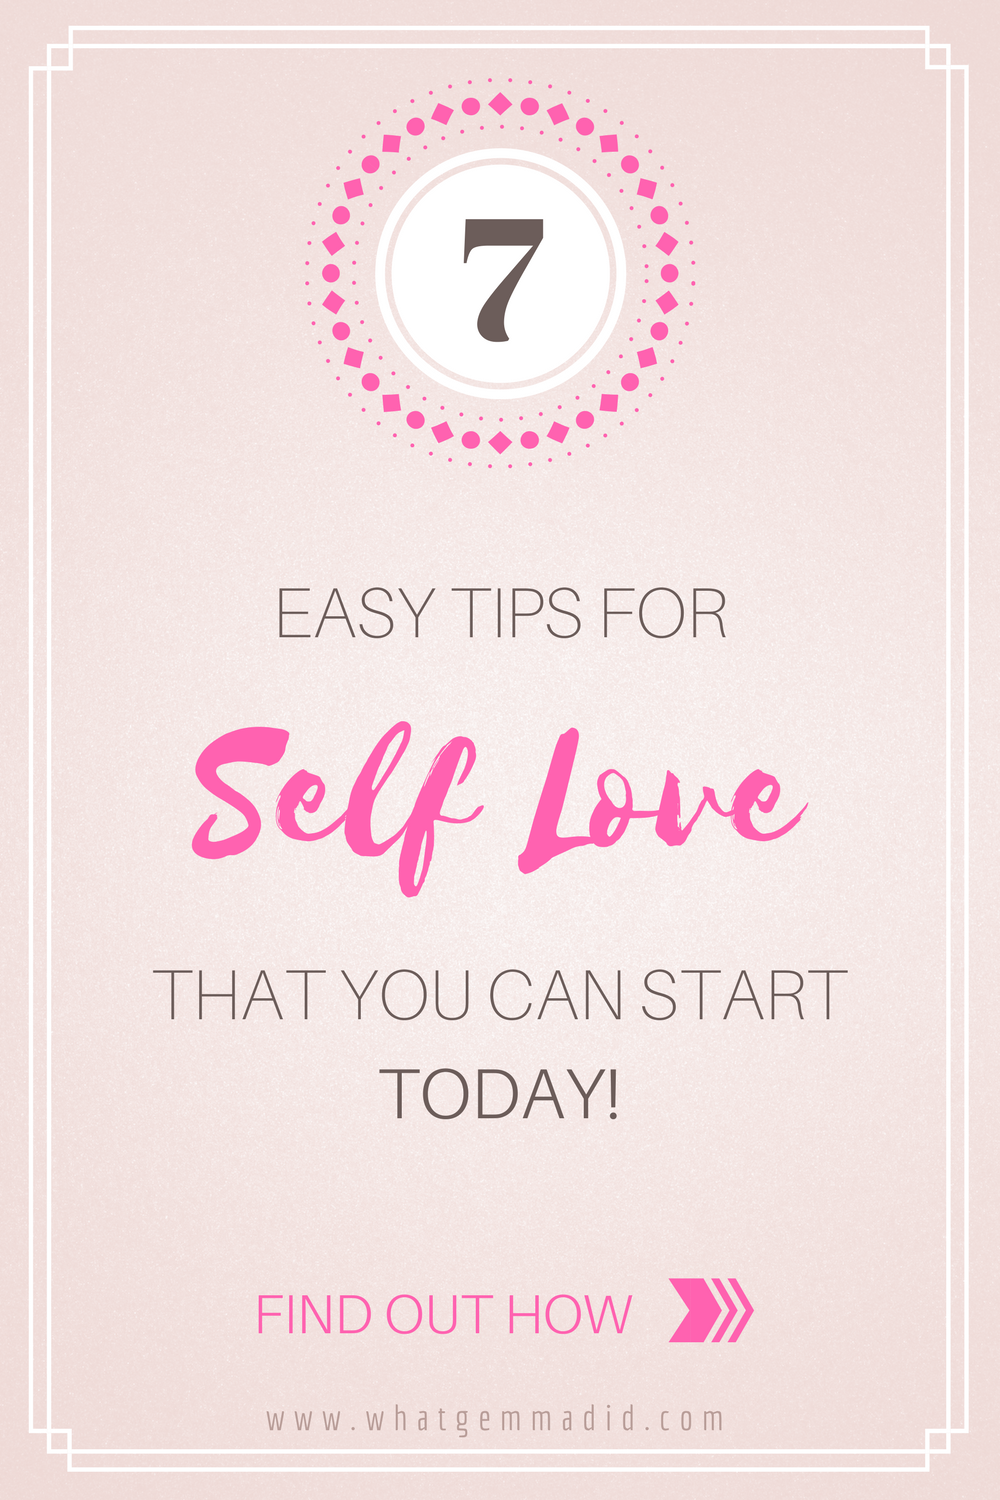 7 tips for self love that you can practice TODAY